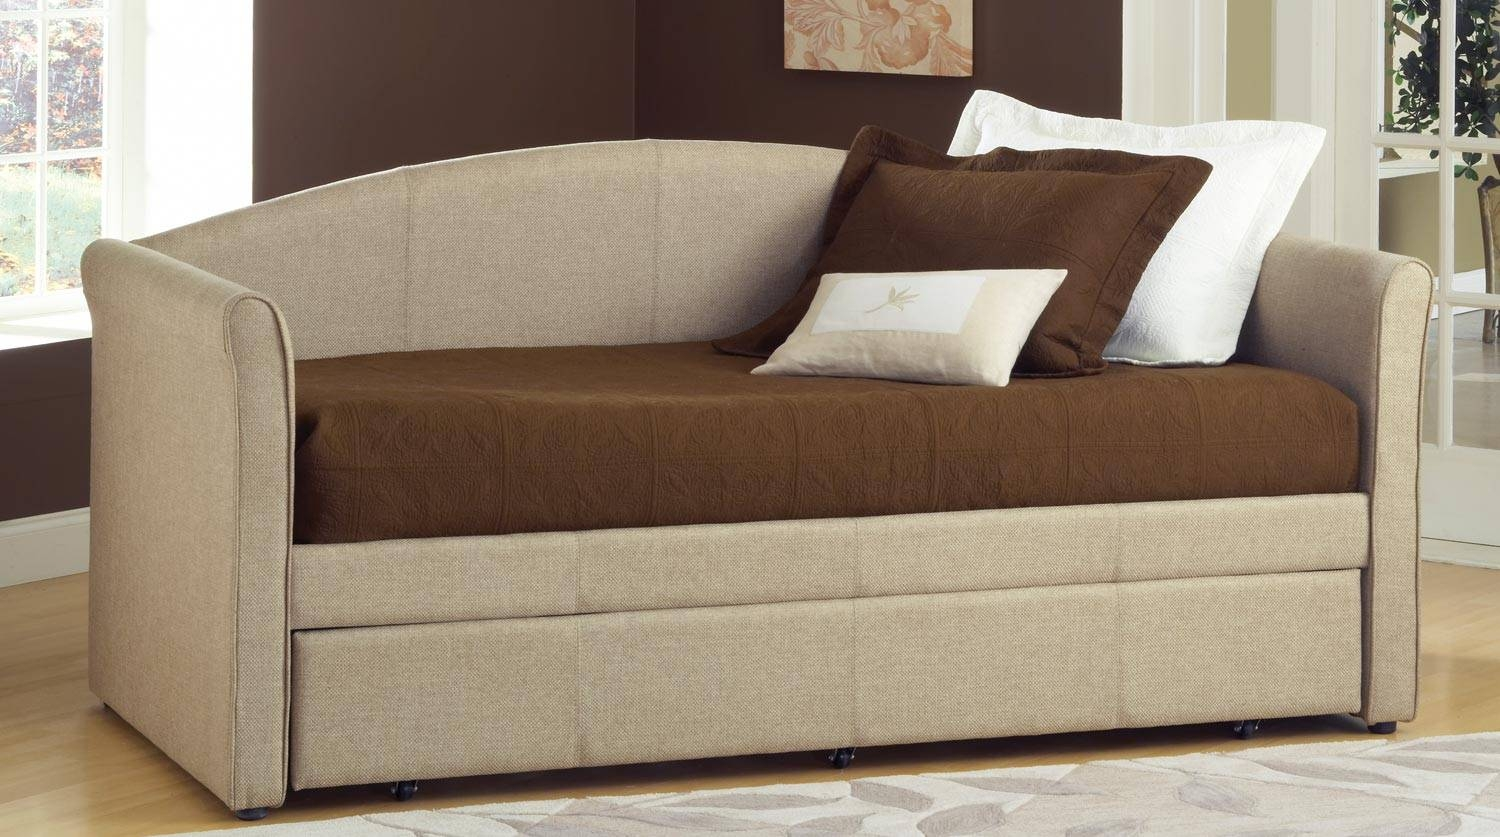 Daybed With Trundles | Home Designlarizza with Sofa Beds With Trundle (Image 5 of 15)